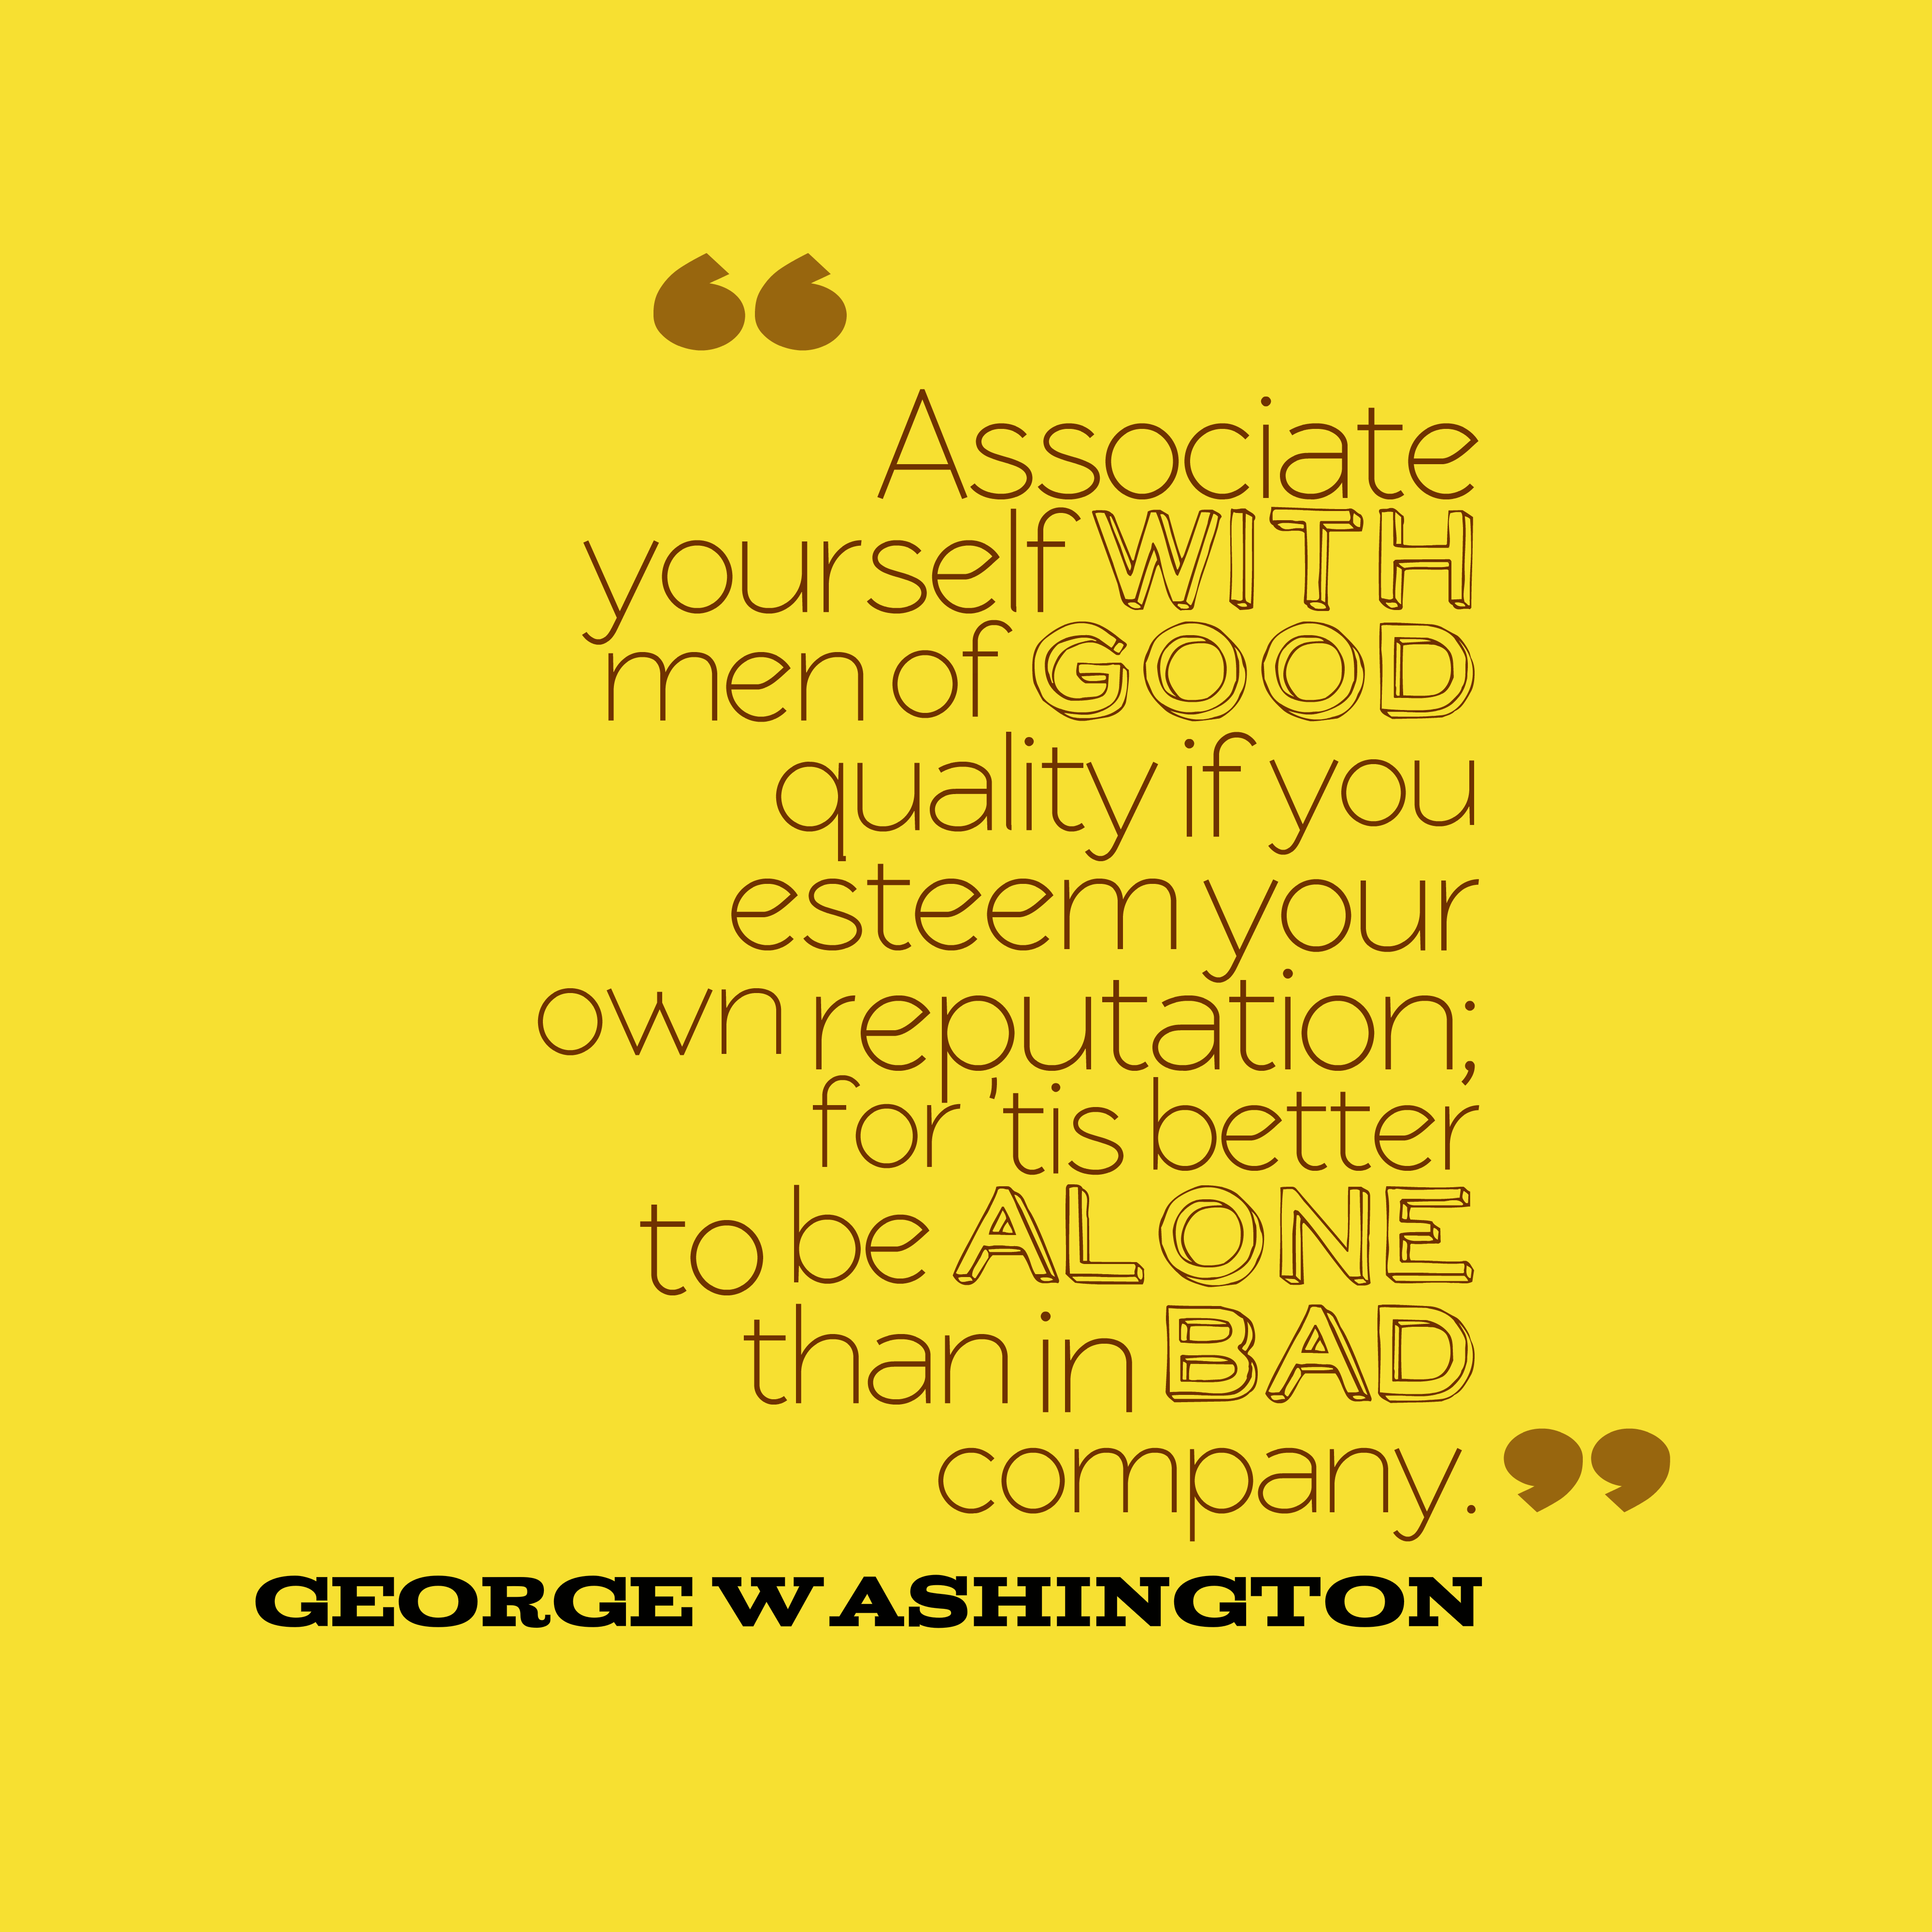 Quotes image of Associate yourself with men of good quality if you esteem your own reputation; for 'tis better to be alone than in bad company.